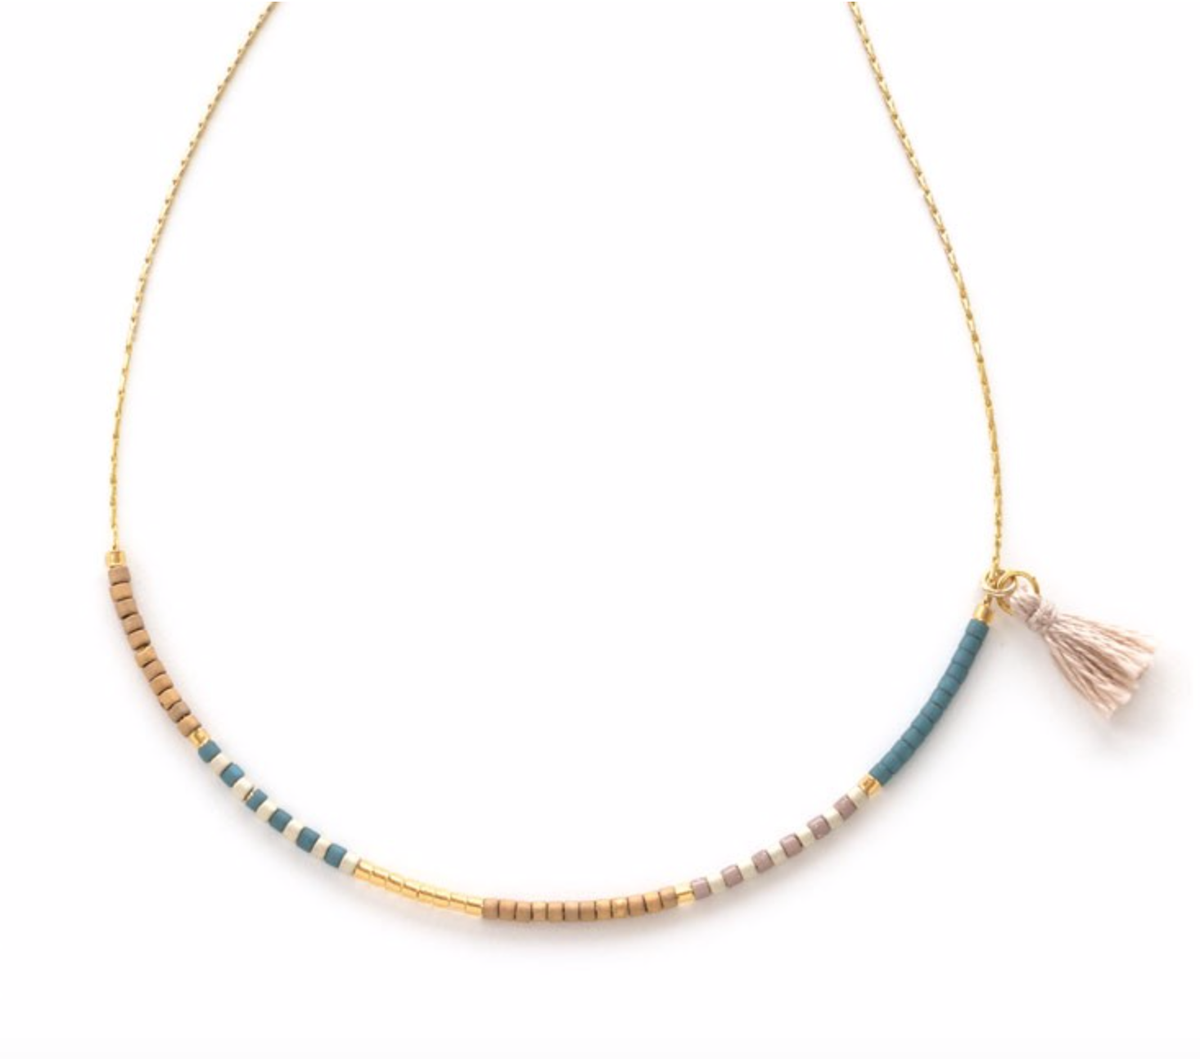 Image of Tiny Tassel Japanese Seed Bead Necklace - Sky